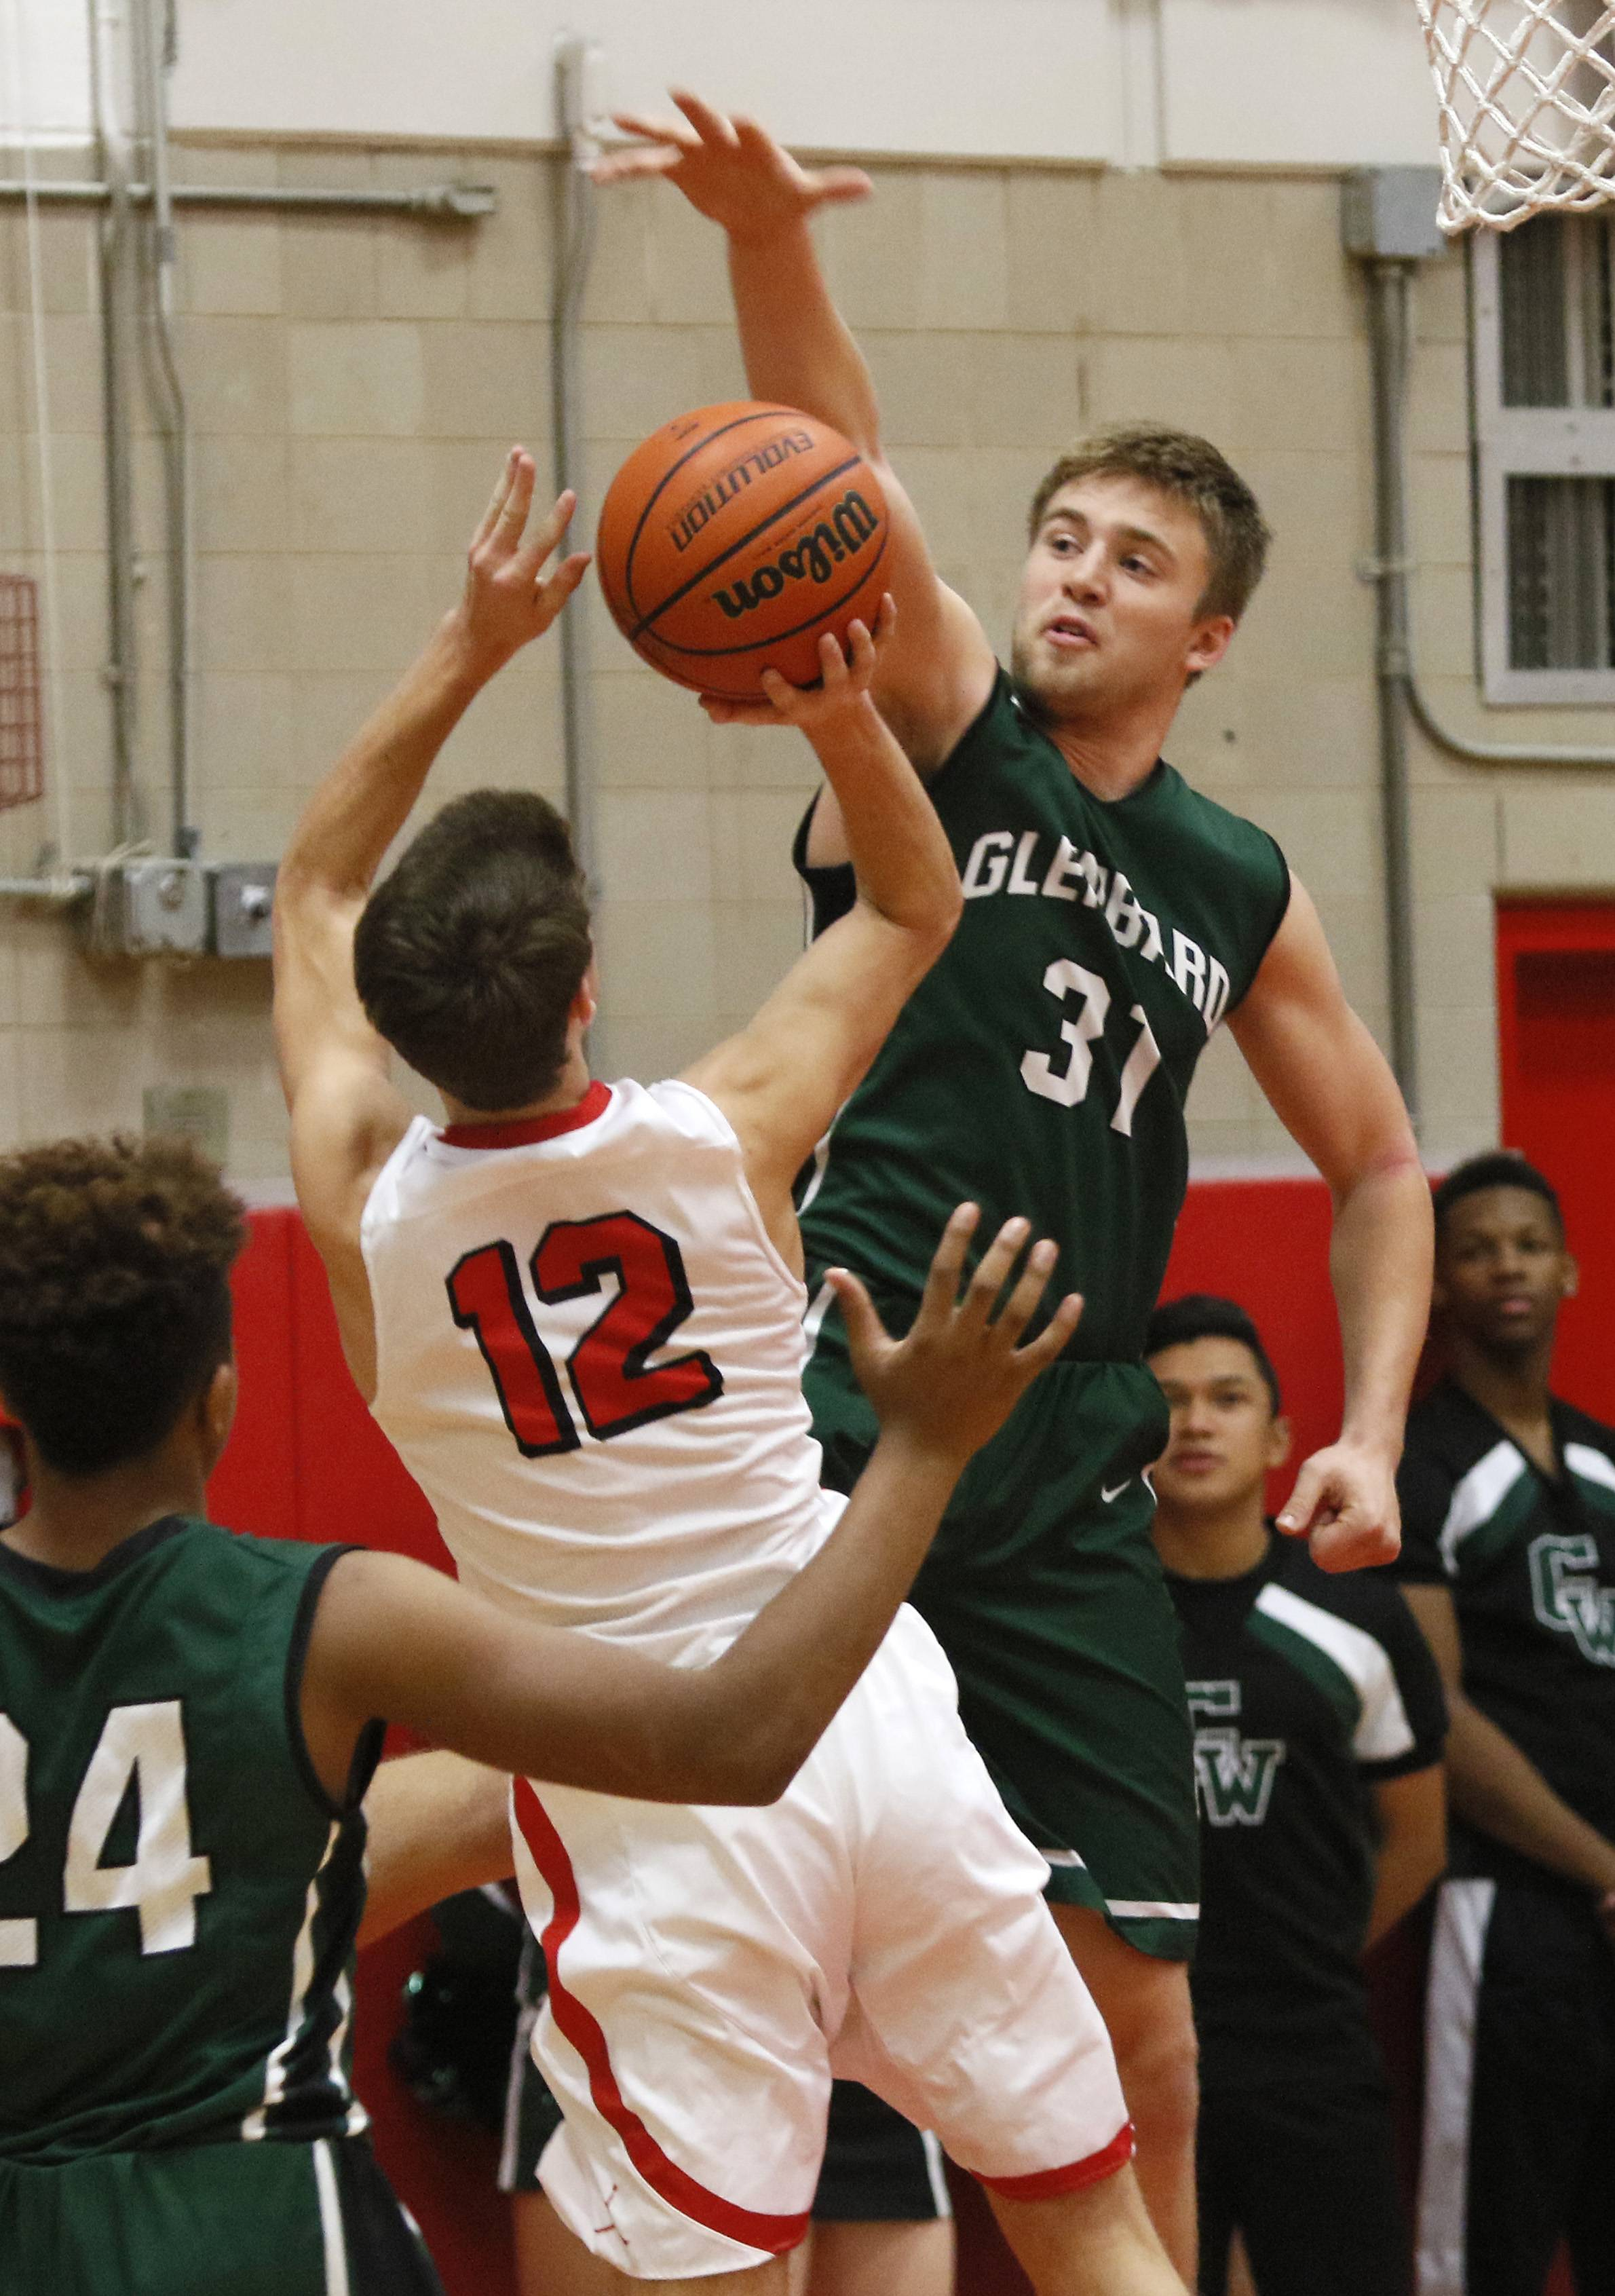 Glenbard West's Alex Pihlstrom blocks Hinsdale Central's Chris Eck's shot during boys basketball action in Hinsdale.